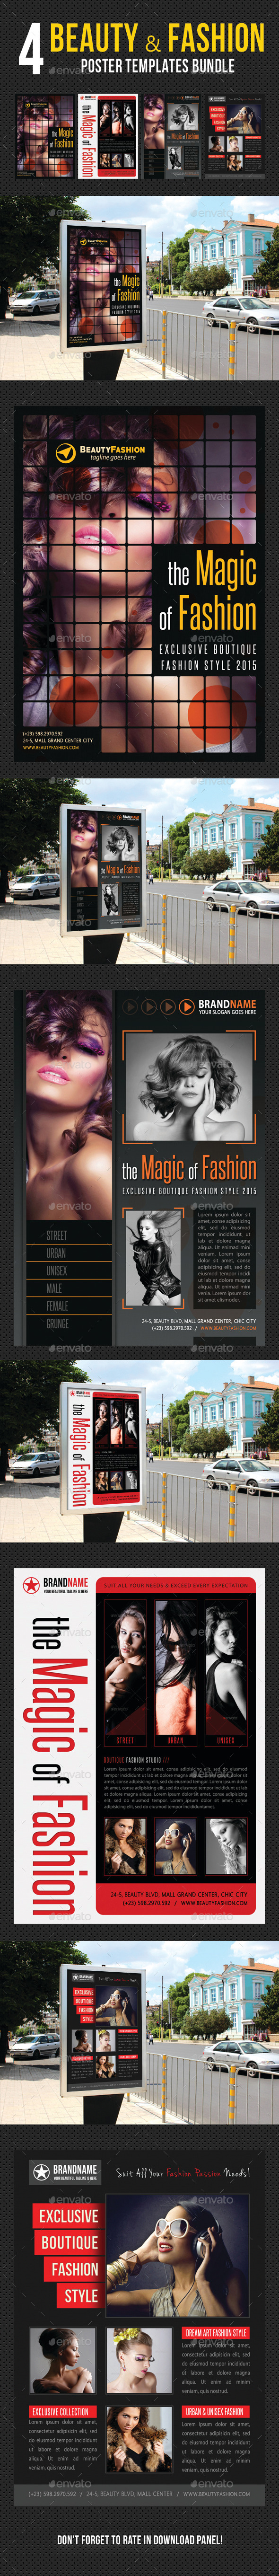 4 in 1 Beauty and Fashion Poster Bundle 02 - Signage Print Templates